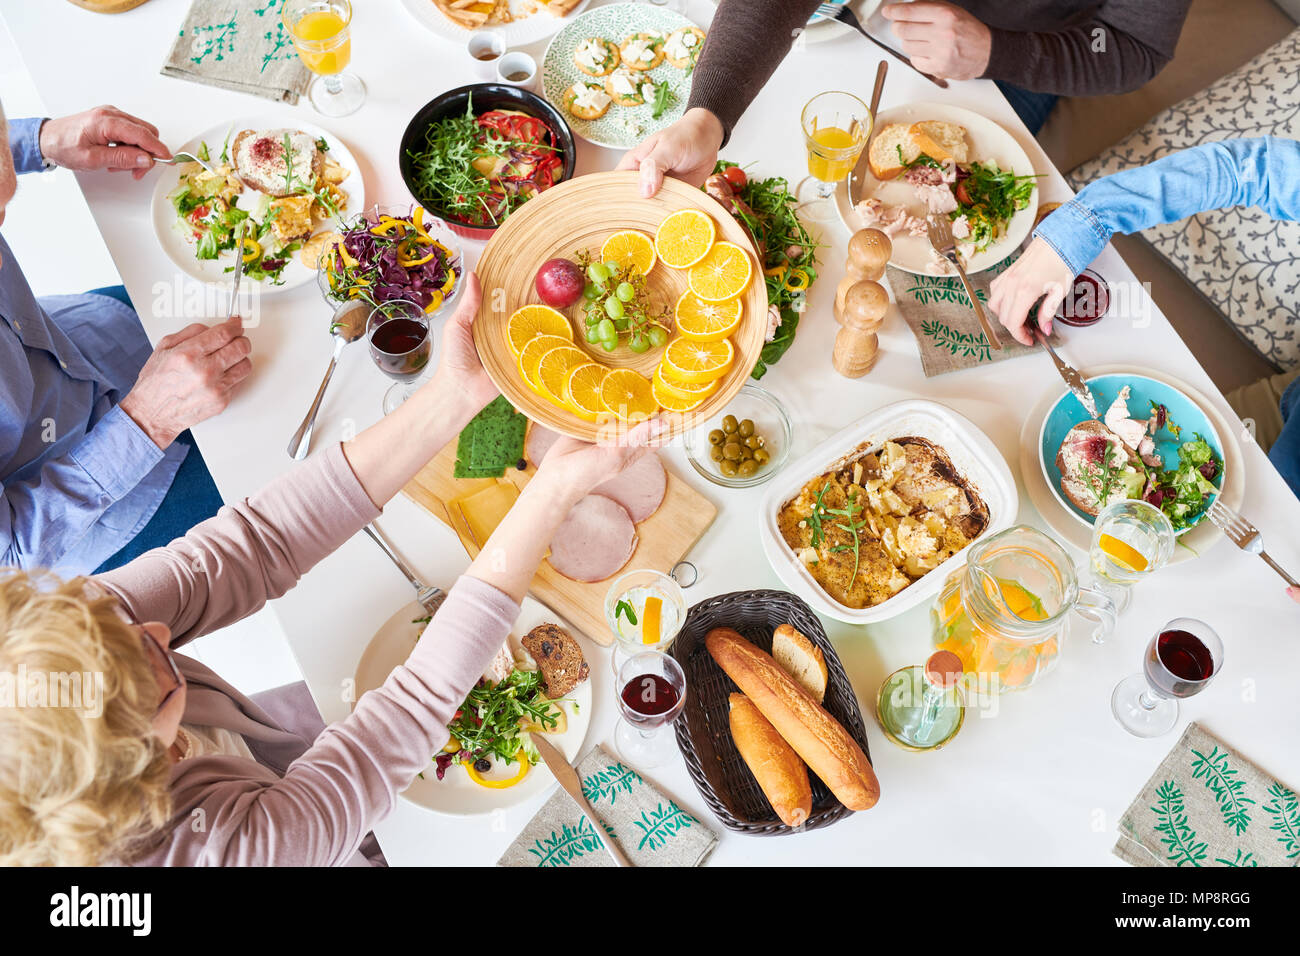 Top View of Happy Family Dinner - Stock Image